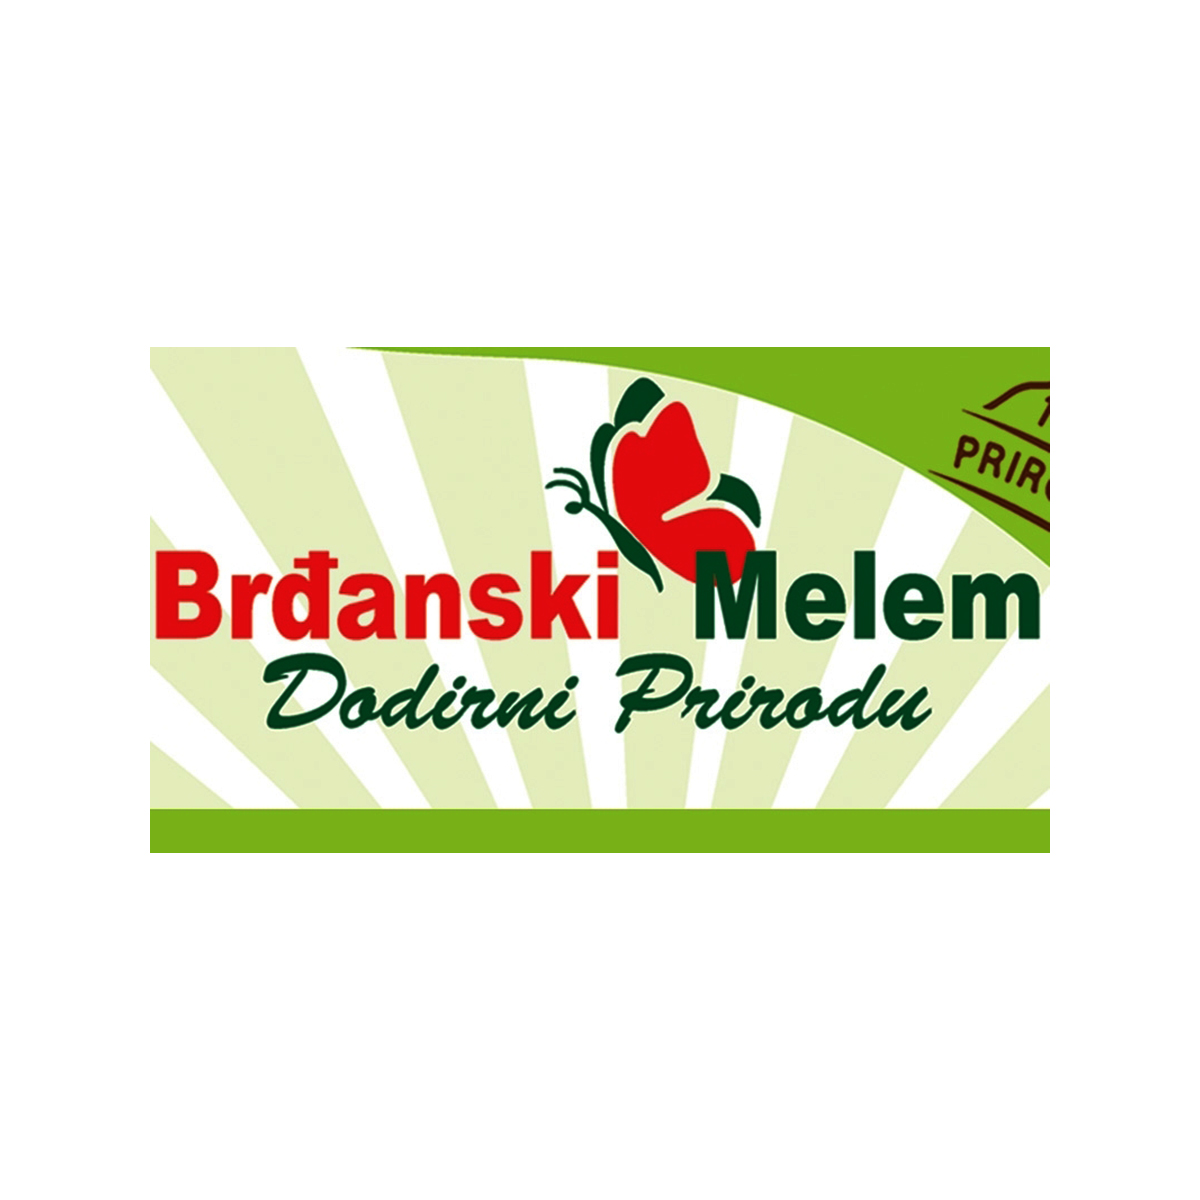 Brdjanski melem